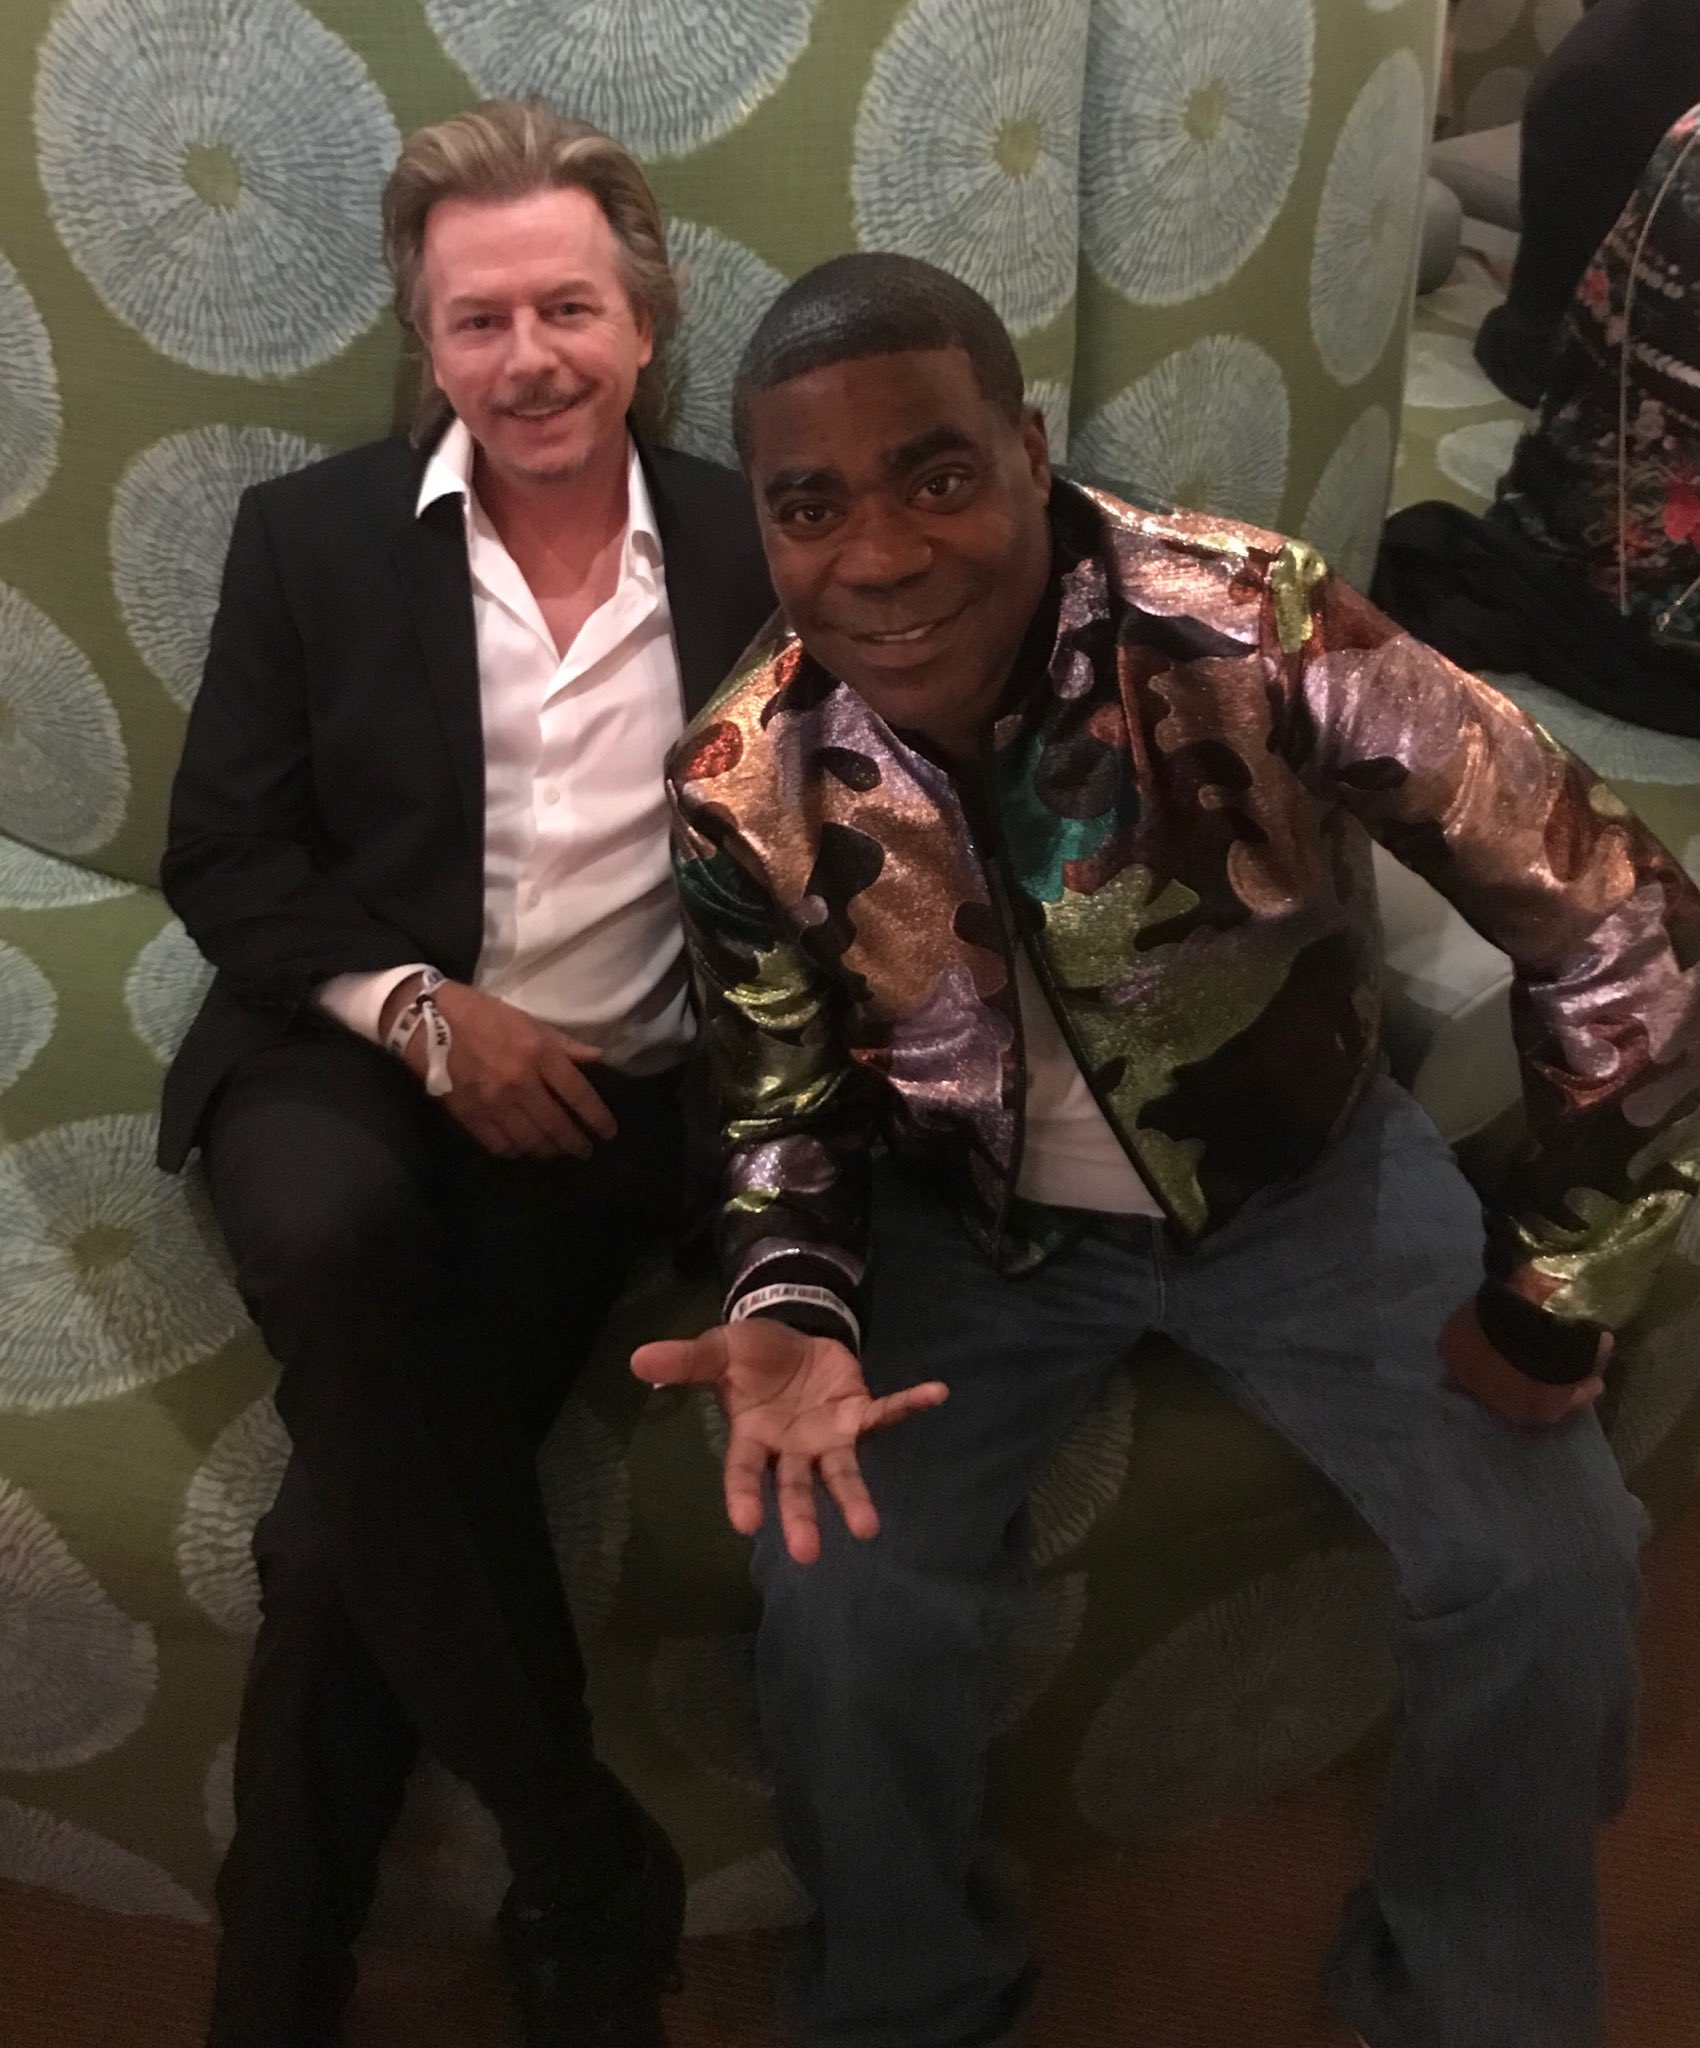 This guy is always funny to catch up with.  ⁦@RealTracyMorgan⁩ https://t.co/3pu3tmFCqG